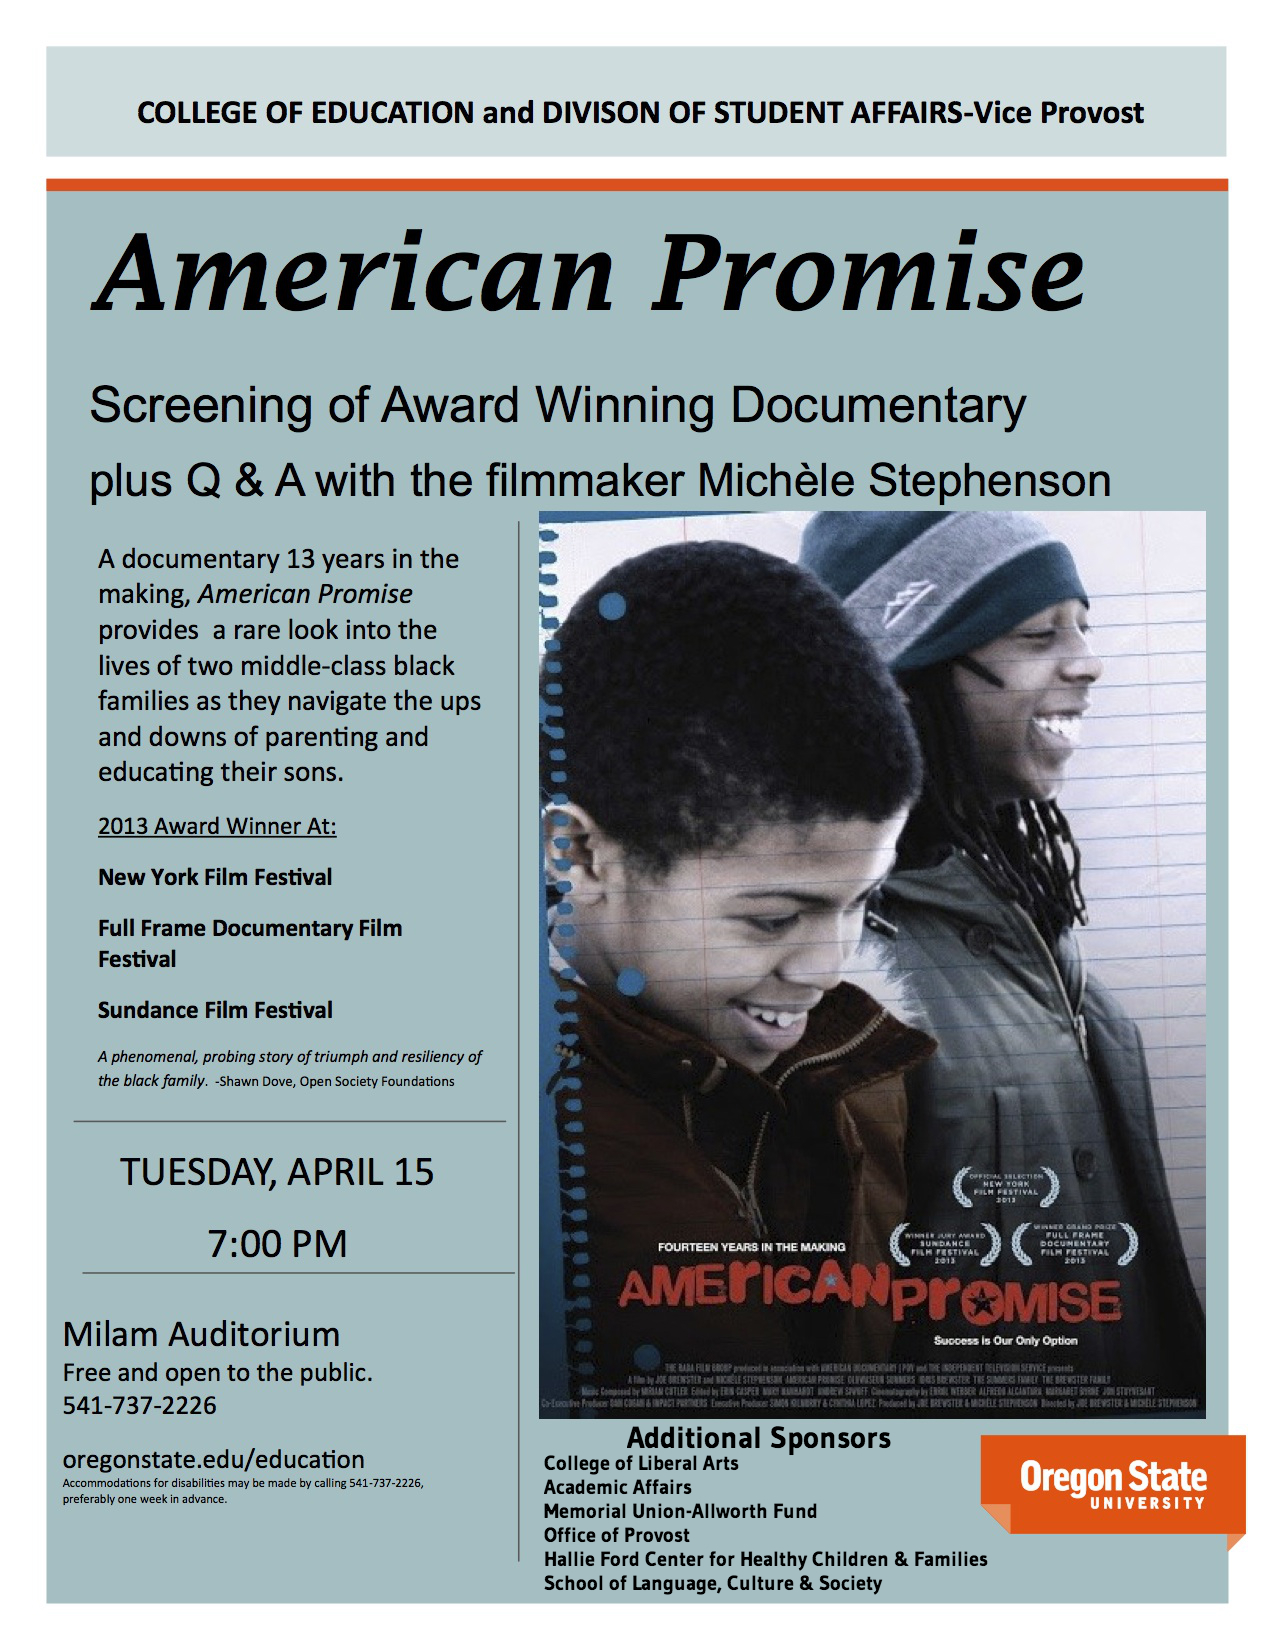 american promise American promise is an intimate and provocative account, recorded over 13 years, of the experiences of two middle-class african-american boys who entered a very prestigious—and historically white—private school on manhattan's upper east side.